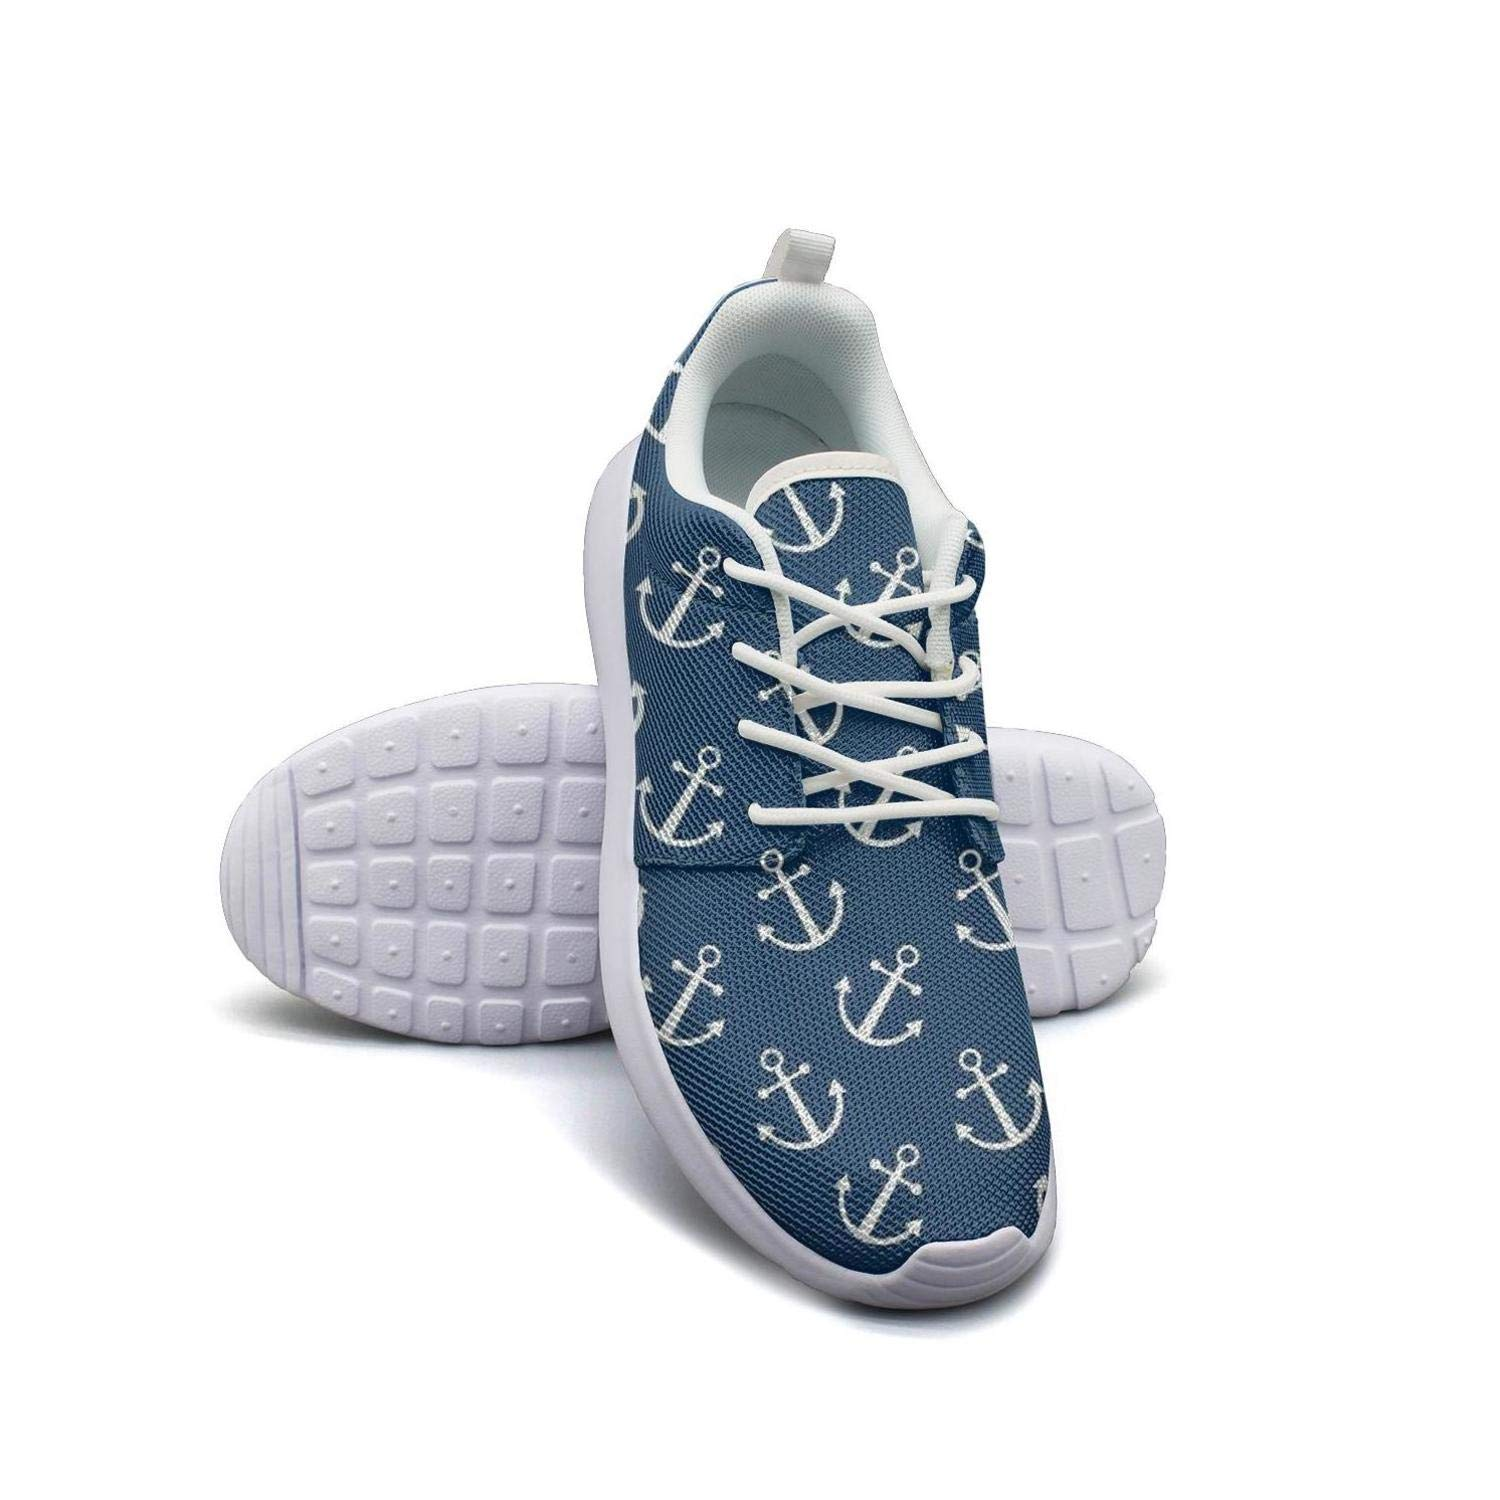 Anchor and Seashell Pattern Mans Flat Bottom Casual Shoes Sneakers Care Sneakers